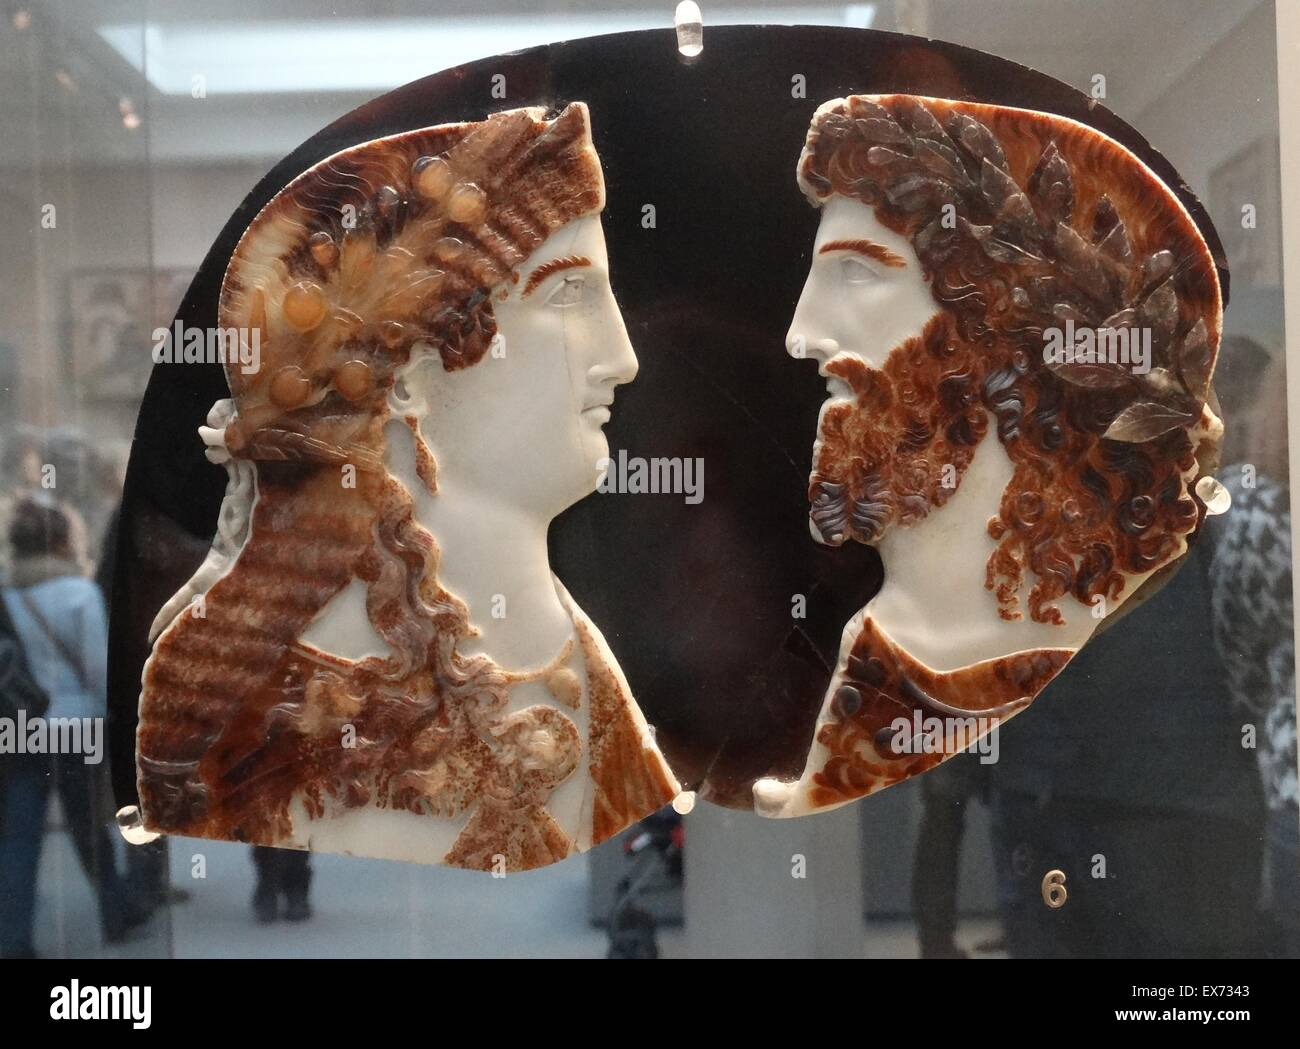 Sardonyx cameo busts of two members of the Roman Imperial family, depicted as Jupiter Ammon and Juno or Isis. About - Stock Image